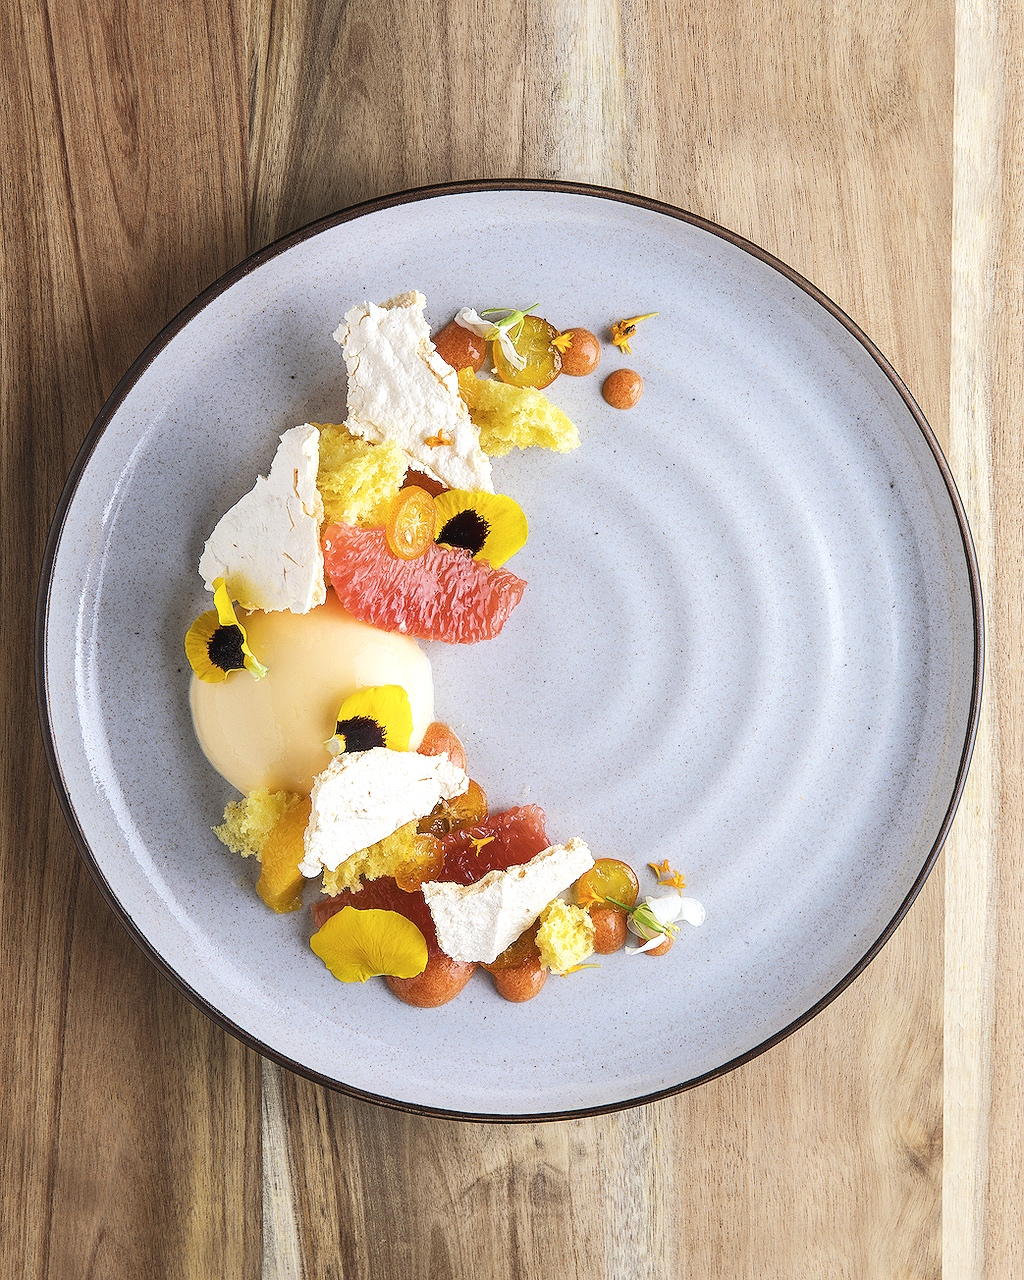 Orange panna cotta, orange sponge cake, meringue shards, candied kumquats, citrus segments, serrano oil